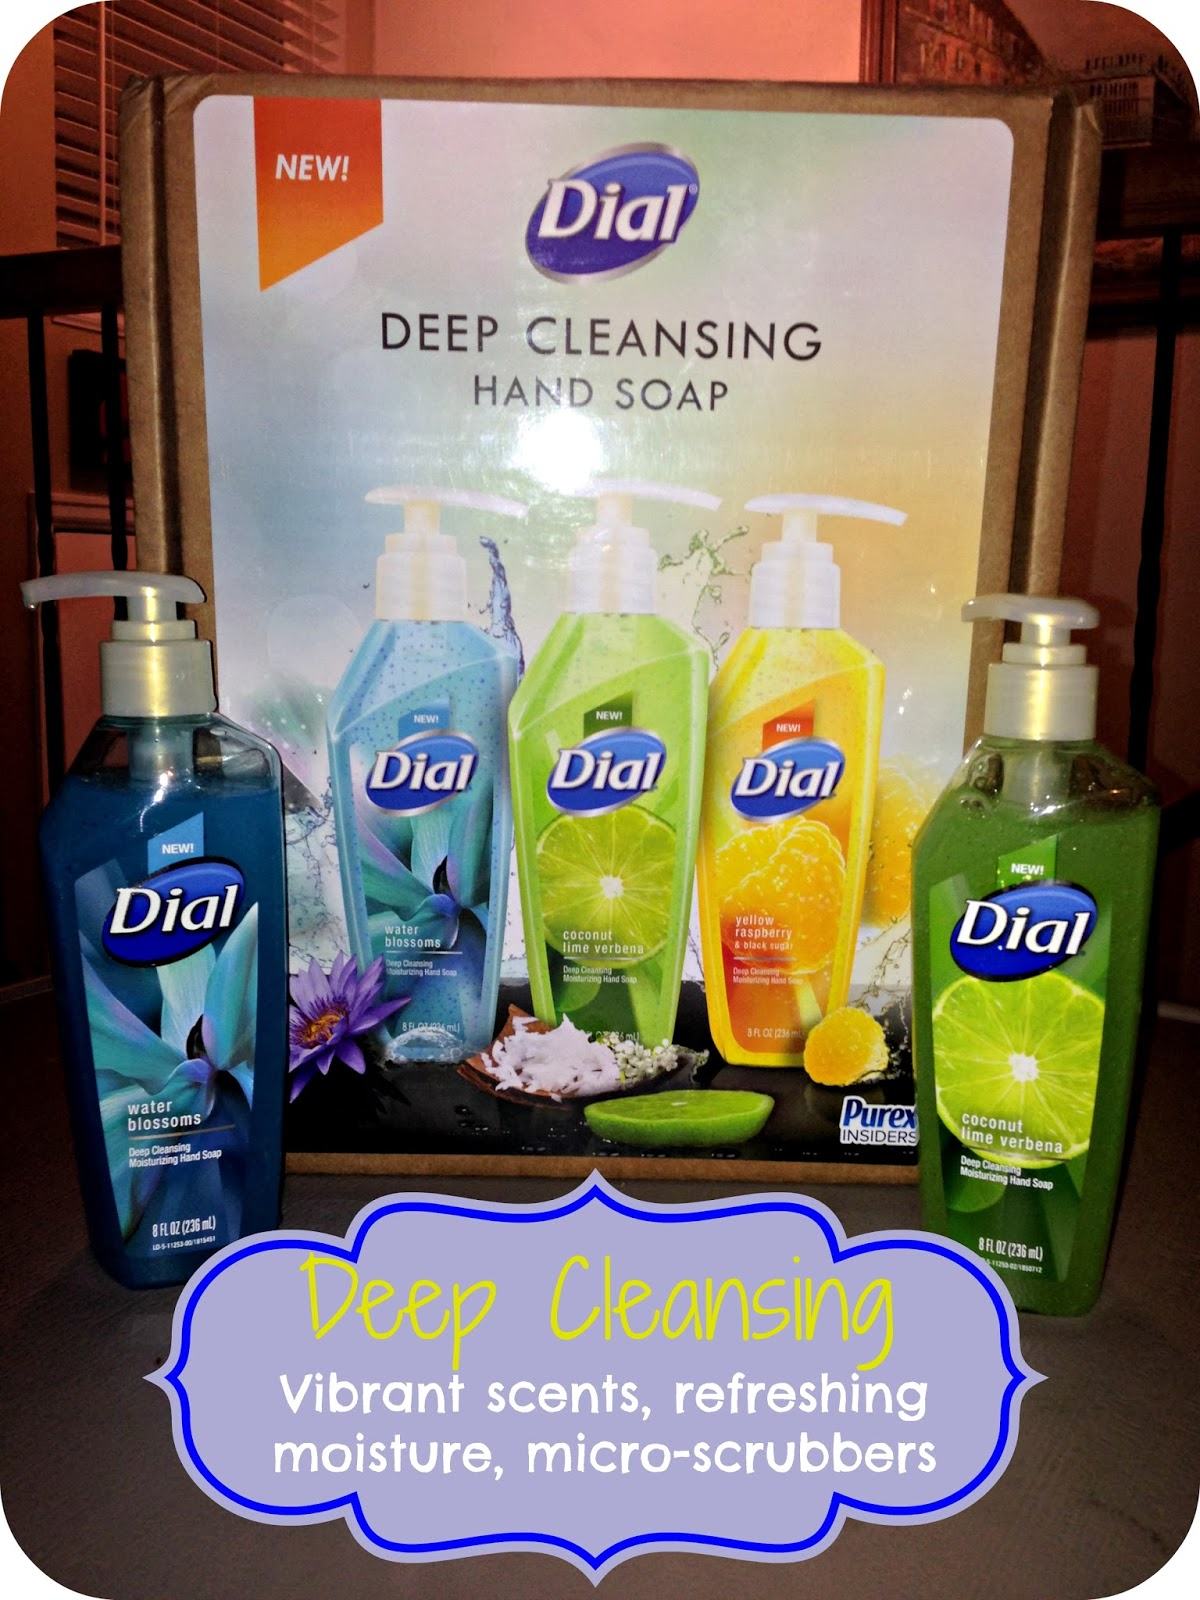 NEW Dial Deep Cleansing Hand Soap